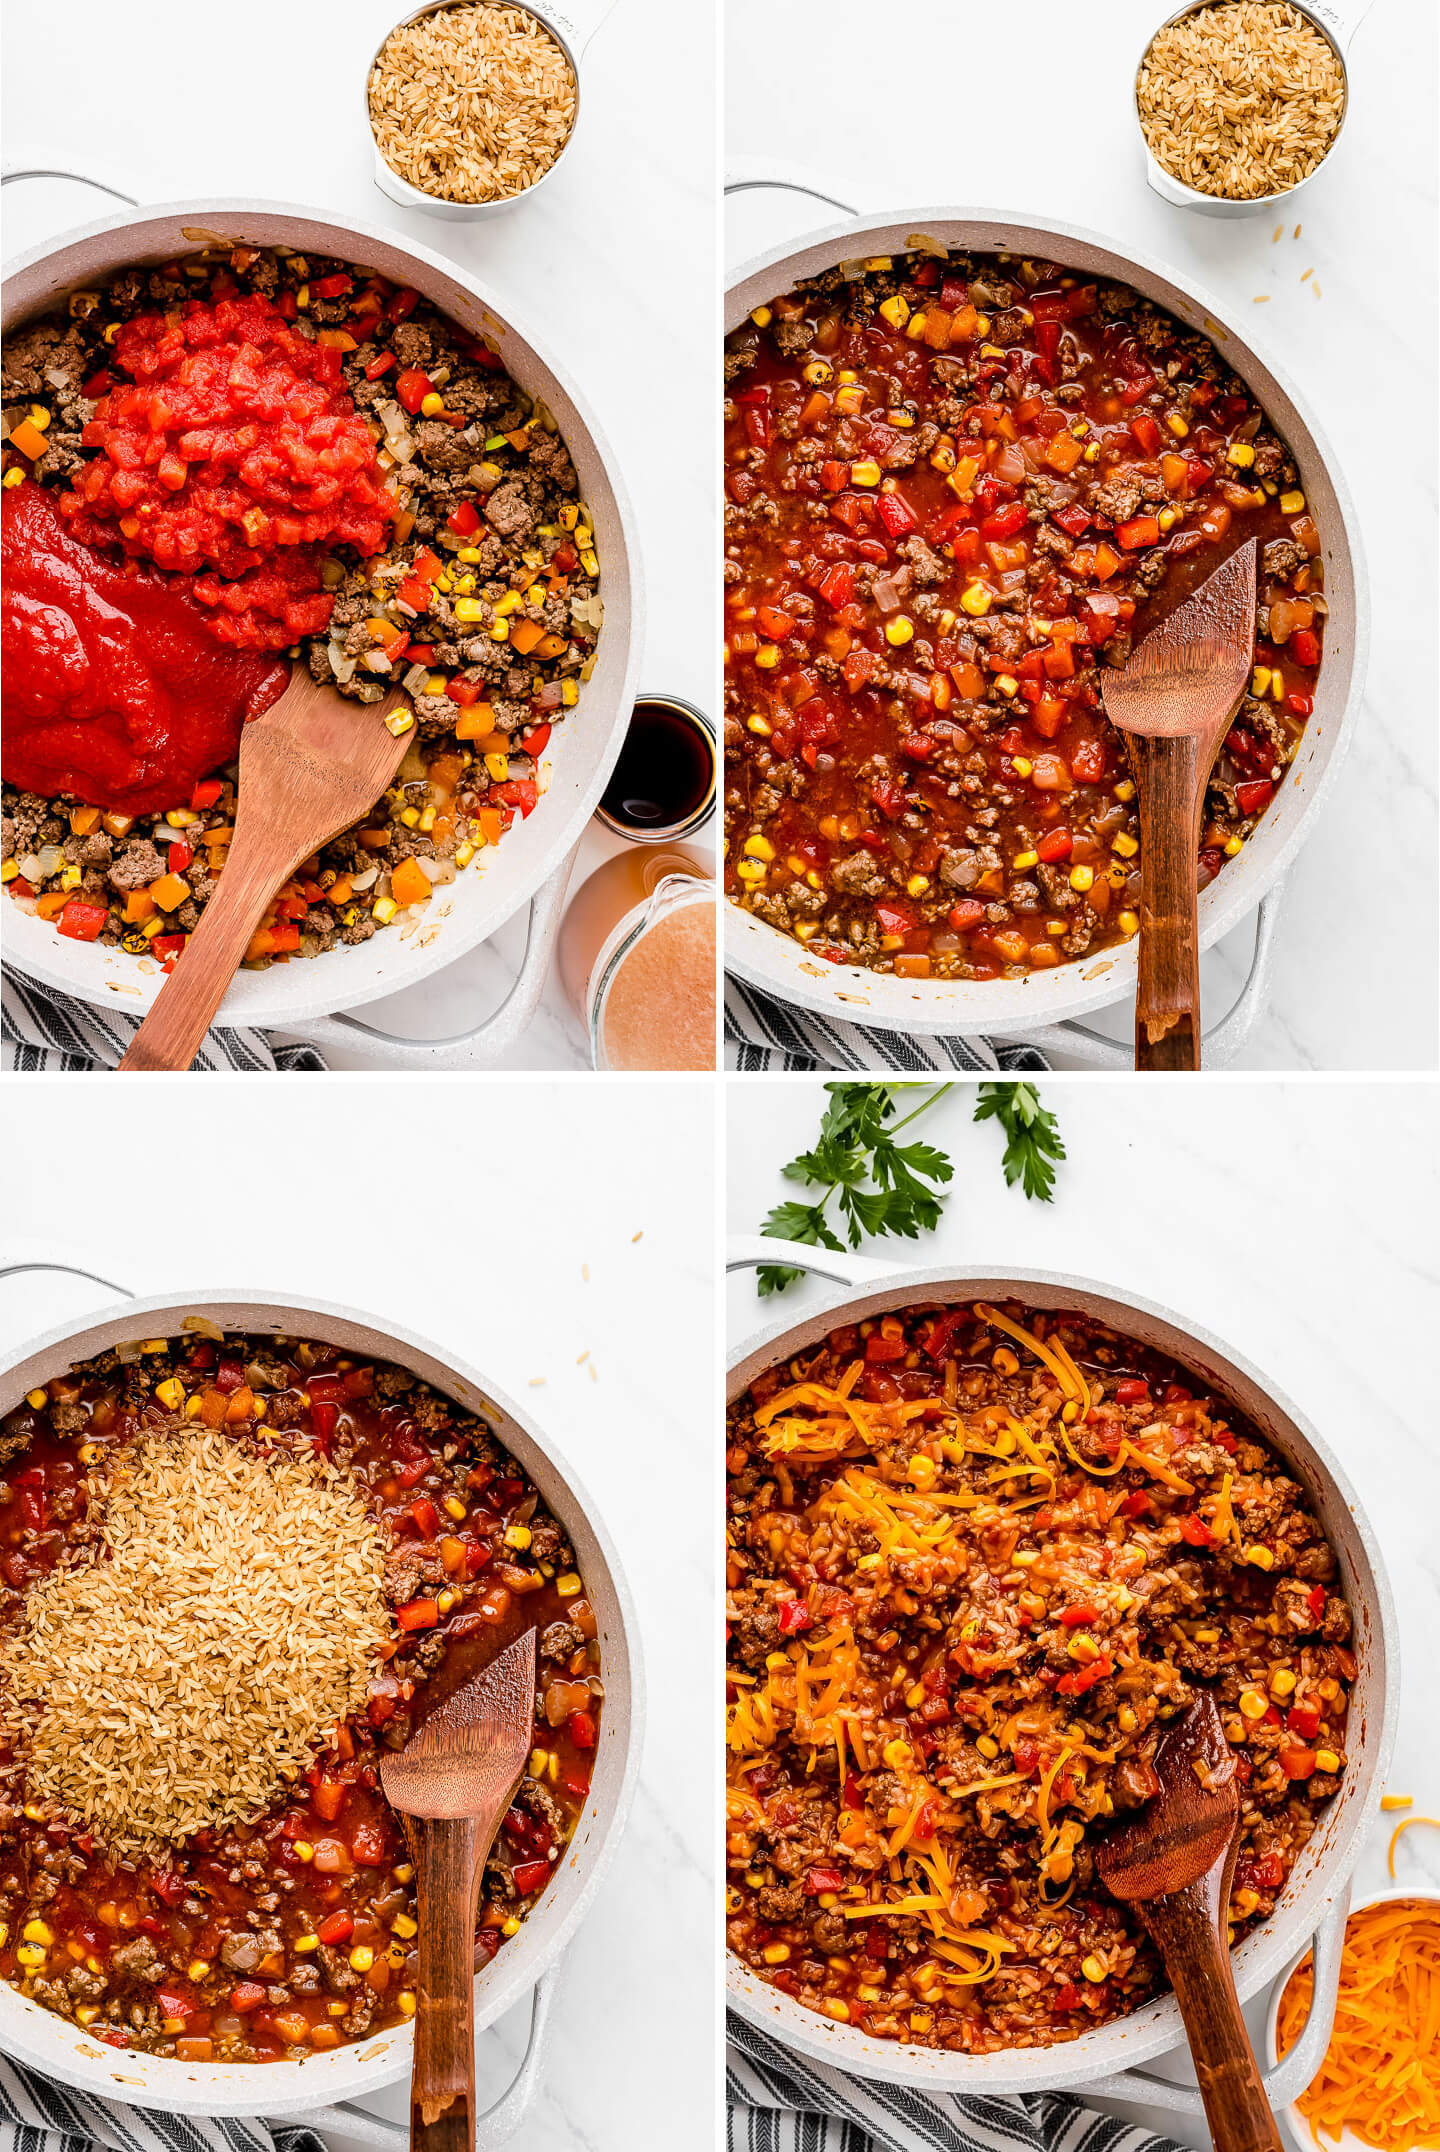 Process shots of how to make a ground beef and rice skillet meal.